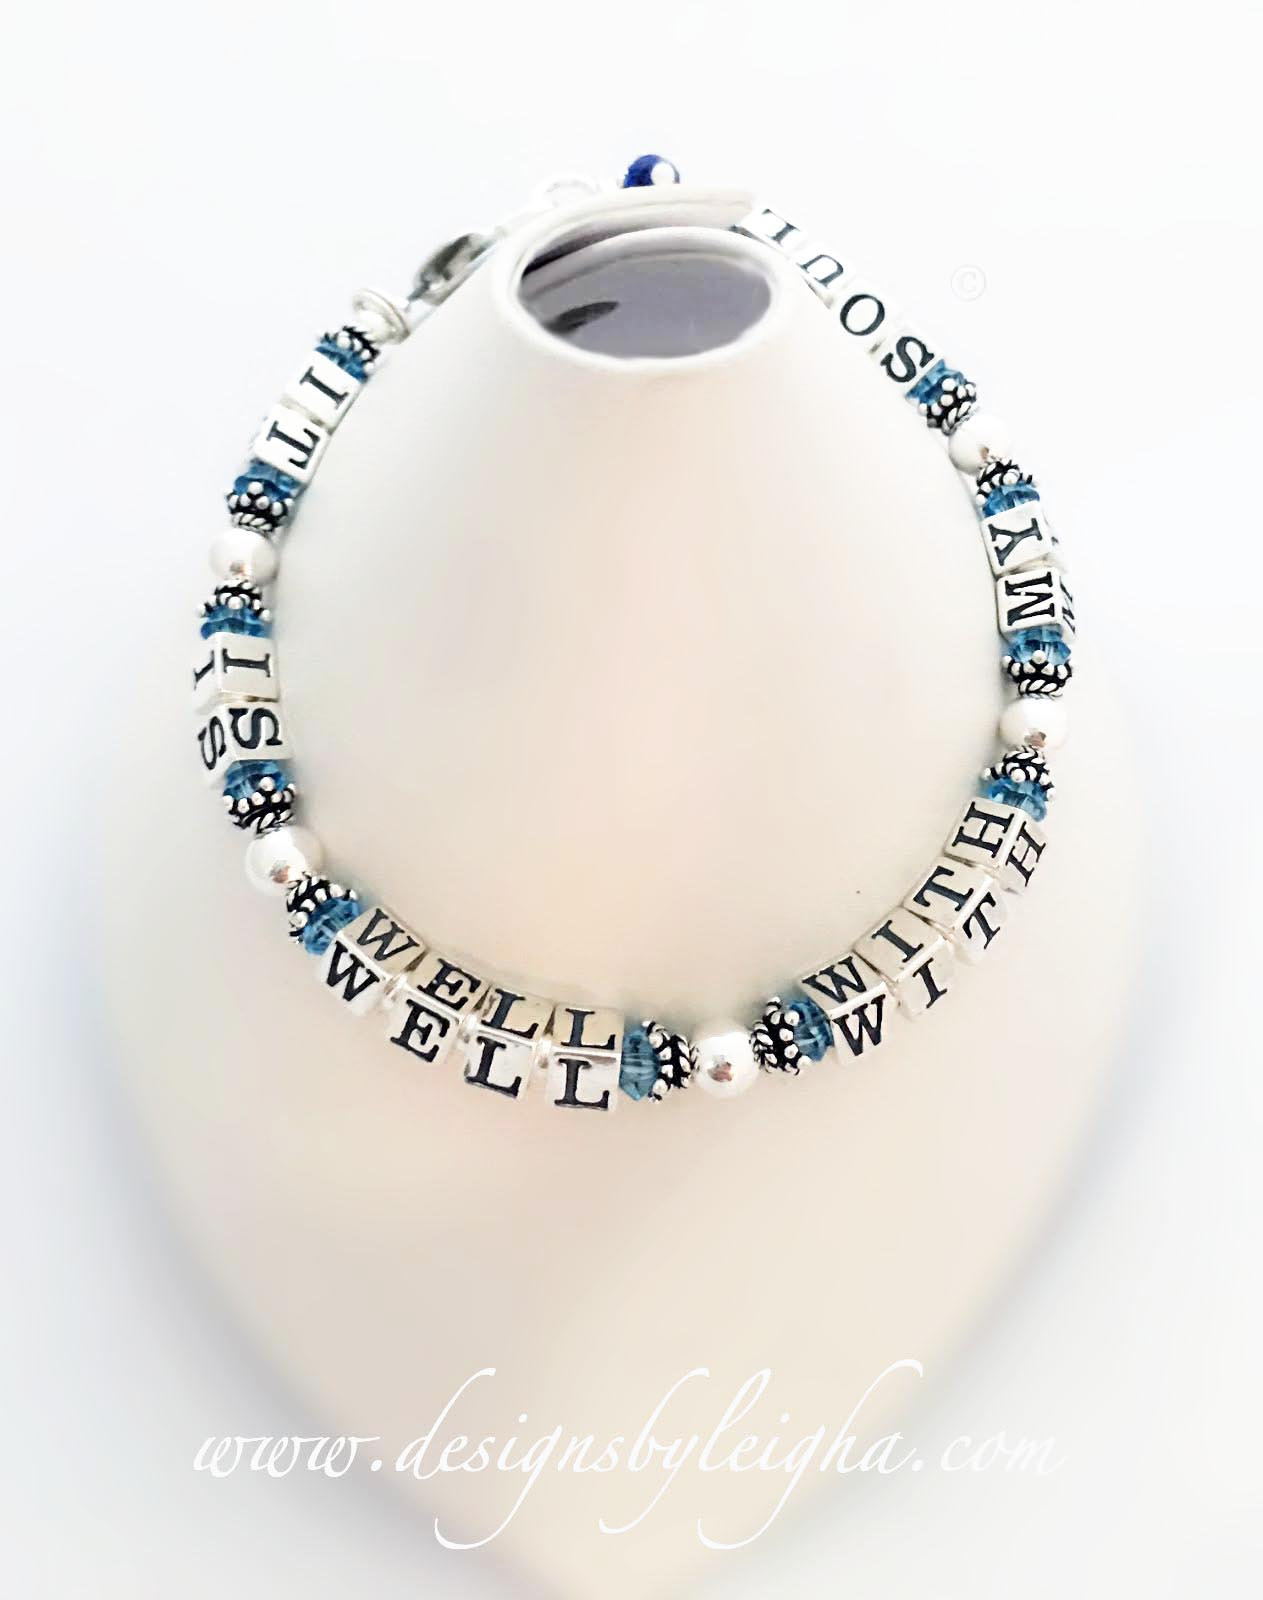 DBL-MB-5 It Is Well With My Soul Bracelet shown with March or Aquamarine Swarovski Crystals.